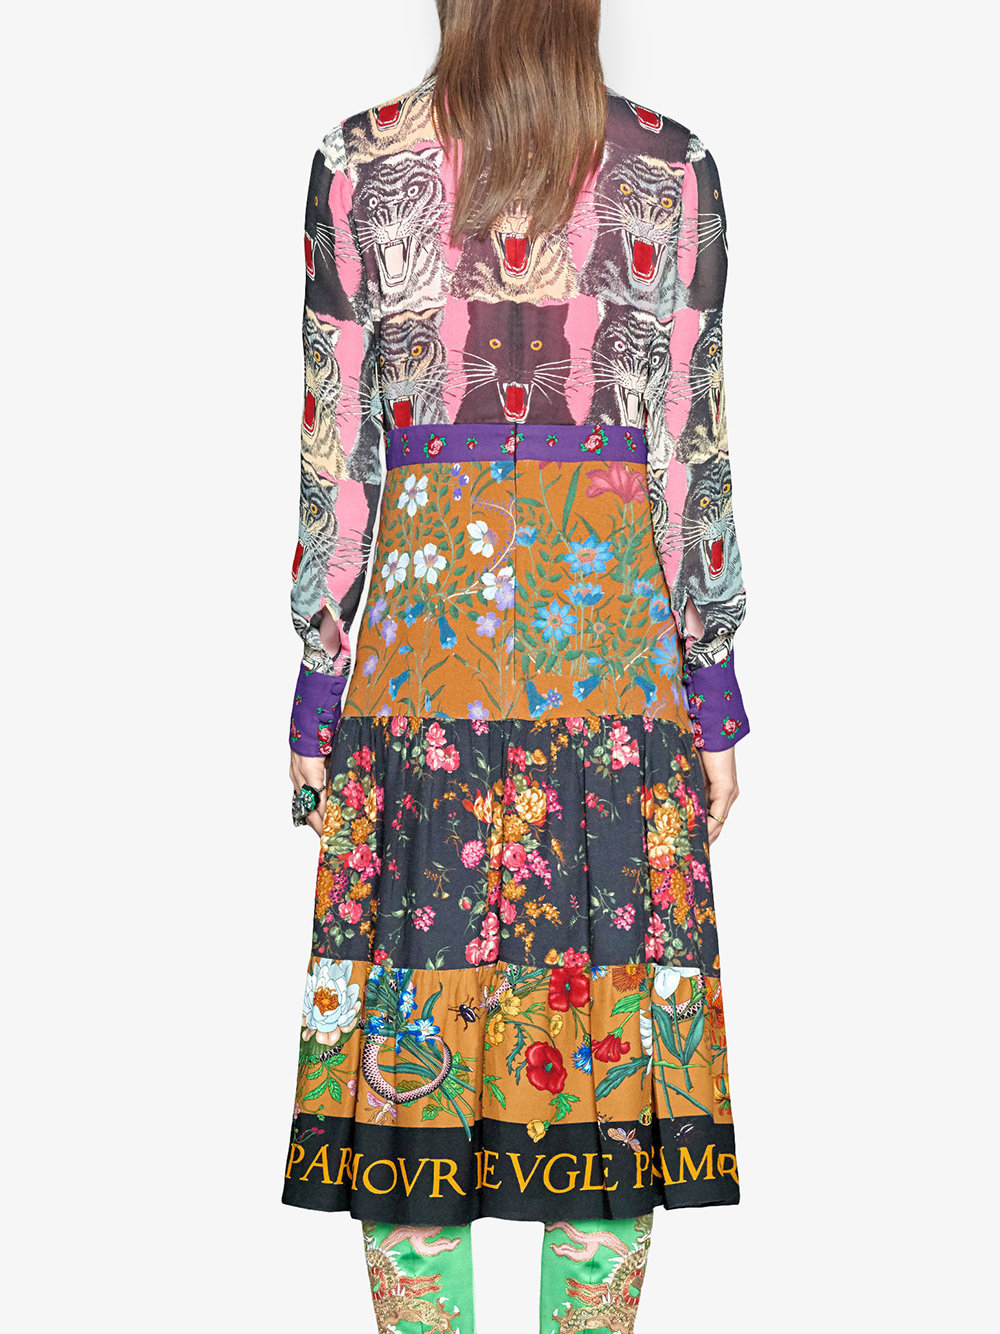 17-18AW WG297 LOOK4 PATCHWORK PRINT DRESS WITH BOW